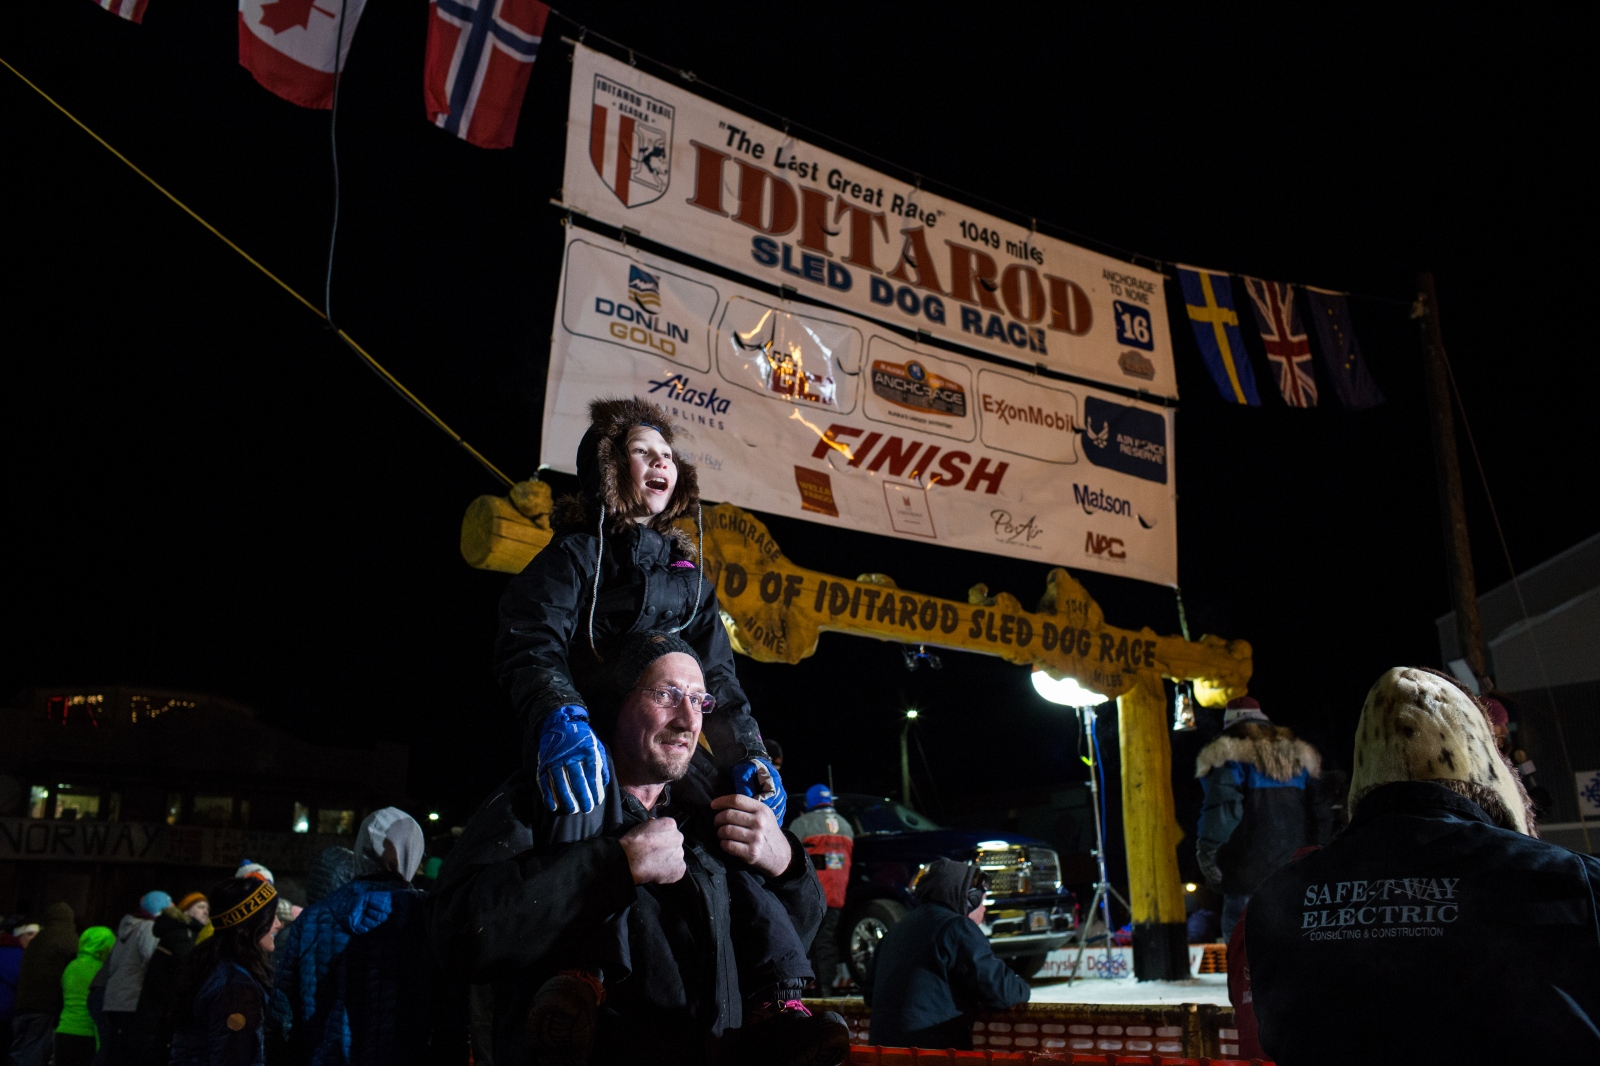 Crowds gather in Nome, Alaska at 2:00am on March 15, 2016 to await the arrival of the first musher.